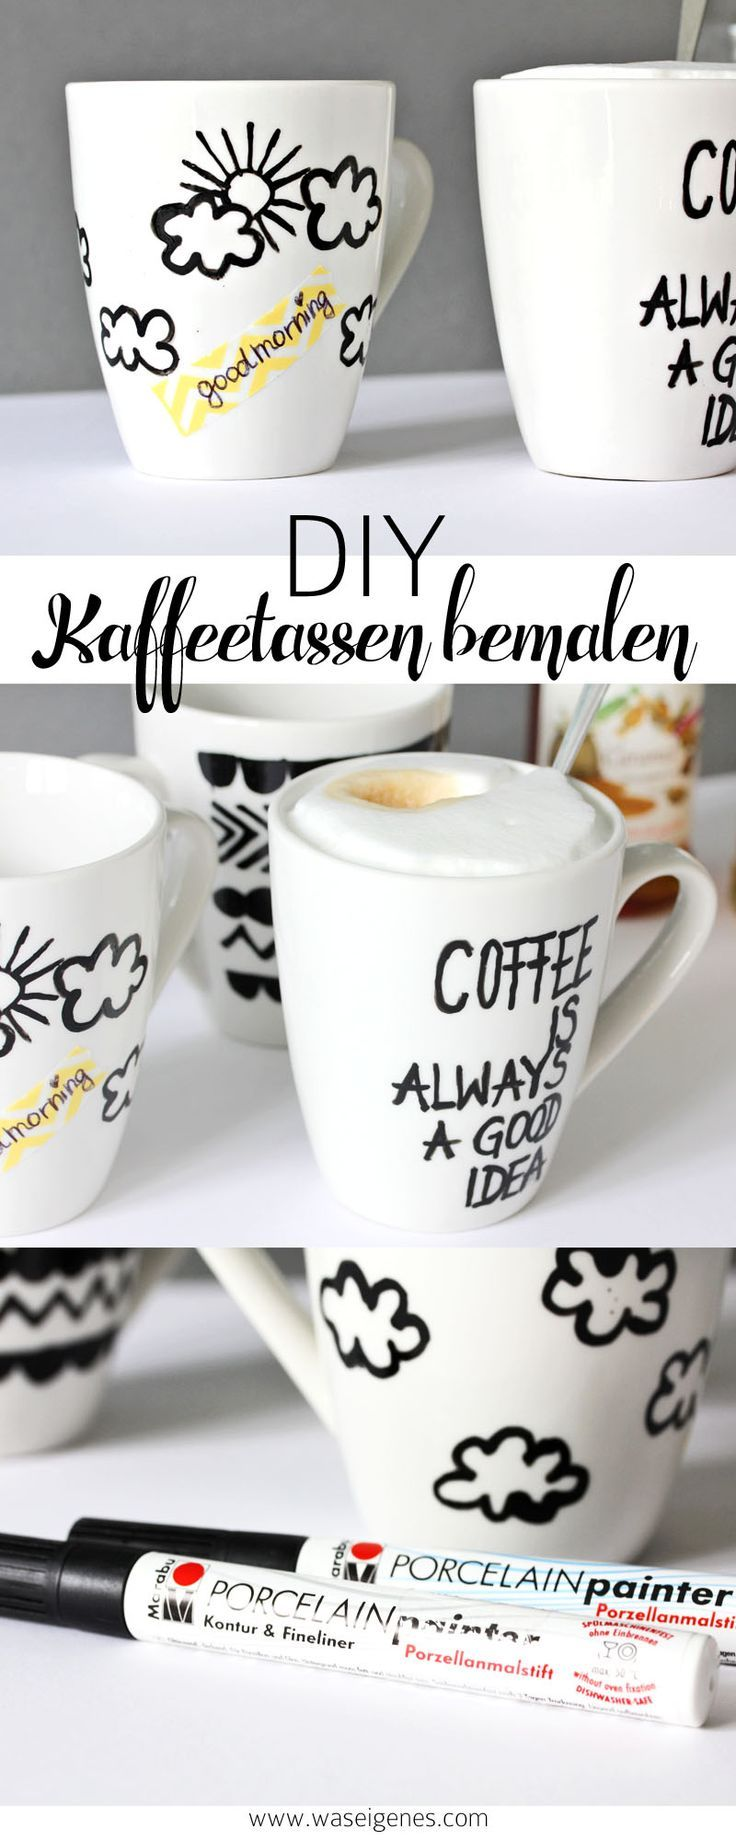 diy kaffeetassen bemalen beschriften ideen um tassen untersetzer selbst zu gestalten. Black Bedroom Furniture Sets. Home Design Ideas